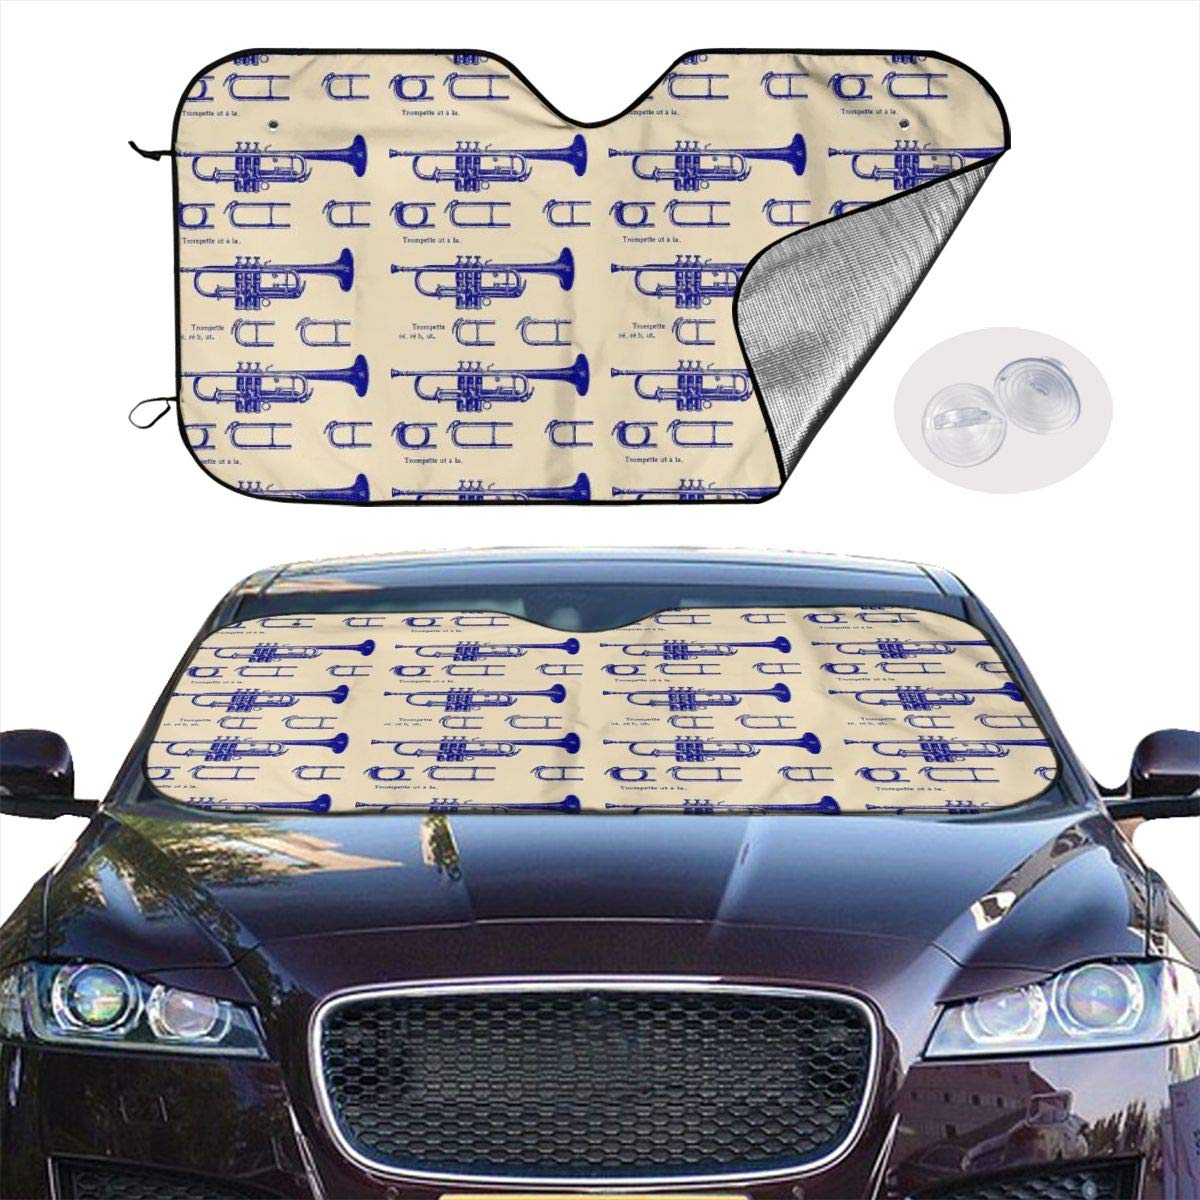 DreamBaby Dream Baby Adjustable Car Shade BRAND NEW SHIPS FREE